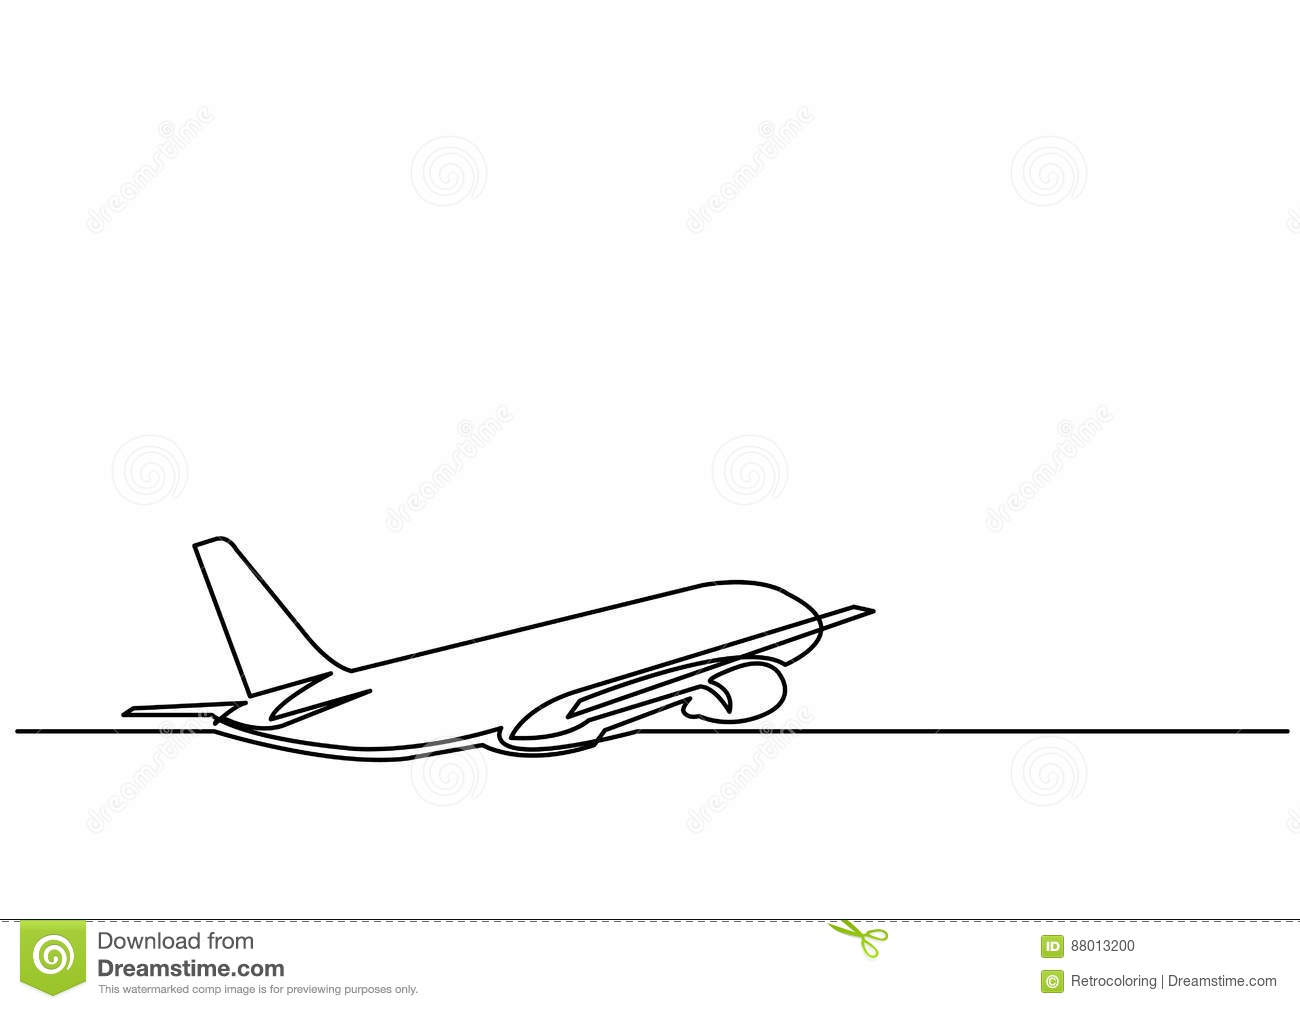 Continuous line drawing isolated layered easy edit vector illustration in eps10 format